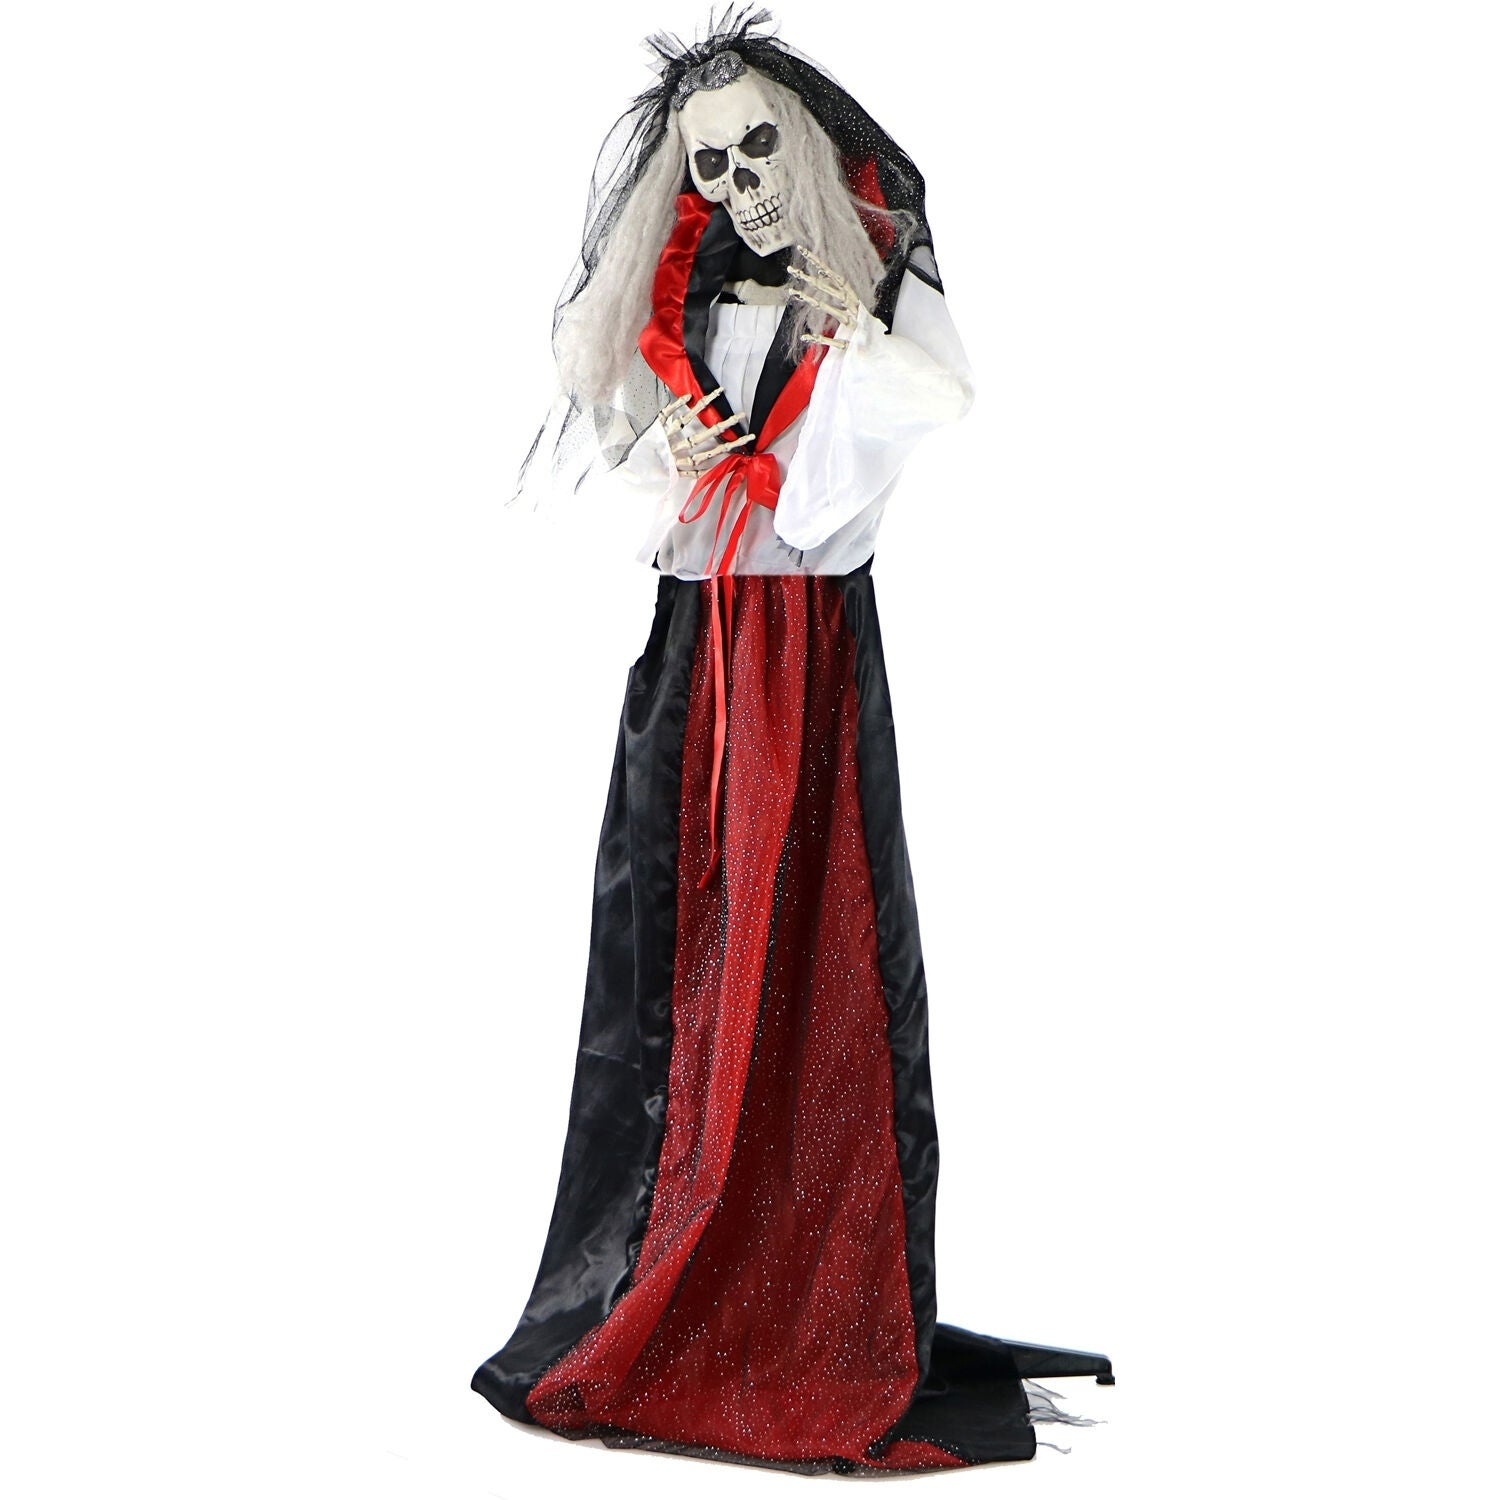 Life Size Animated Moaning Skeleton Bride Prop w Flashing Red Eyes for Indoor Outdoor Halloween Decoration Battery Operated